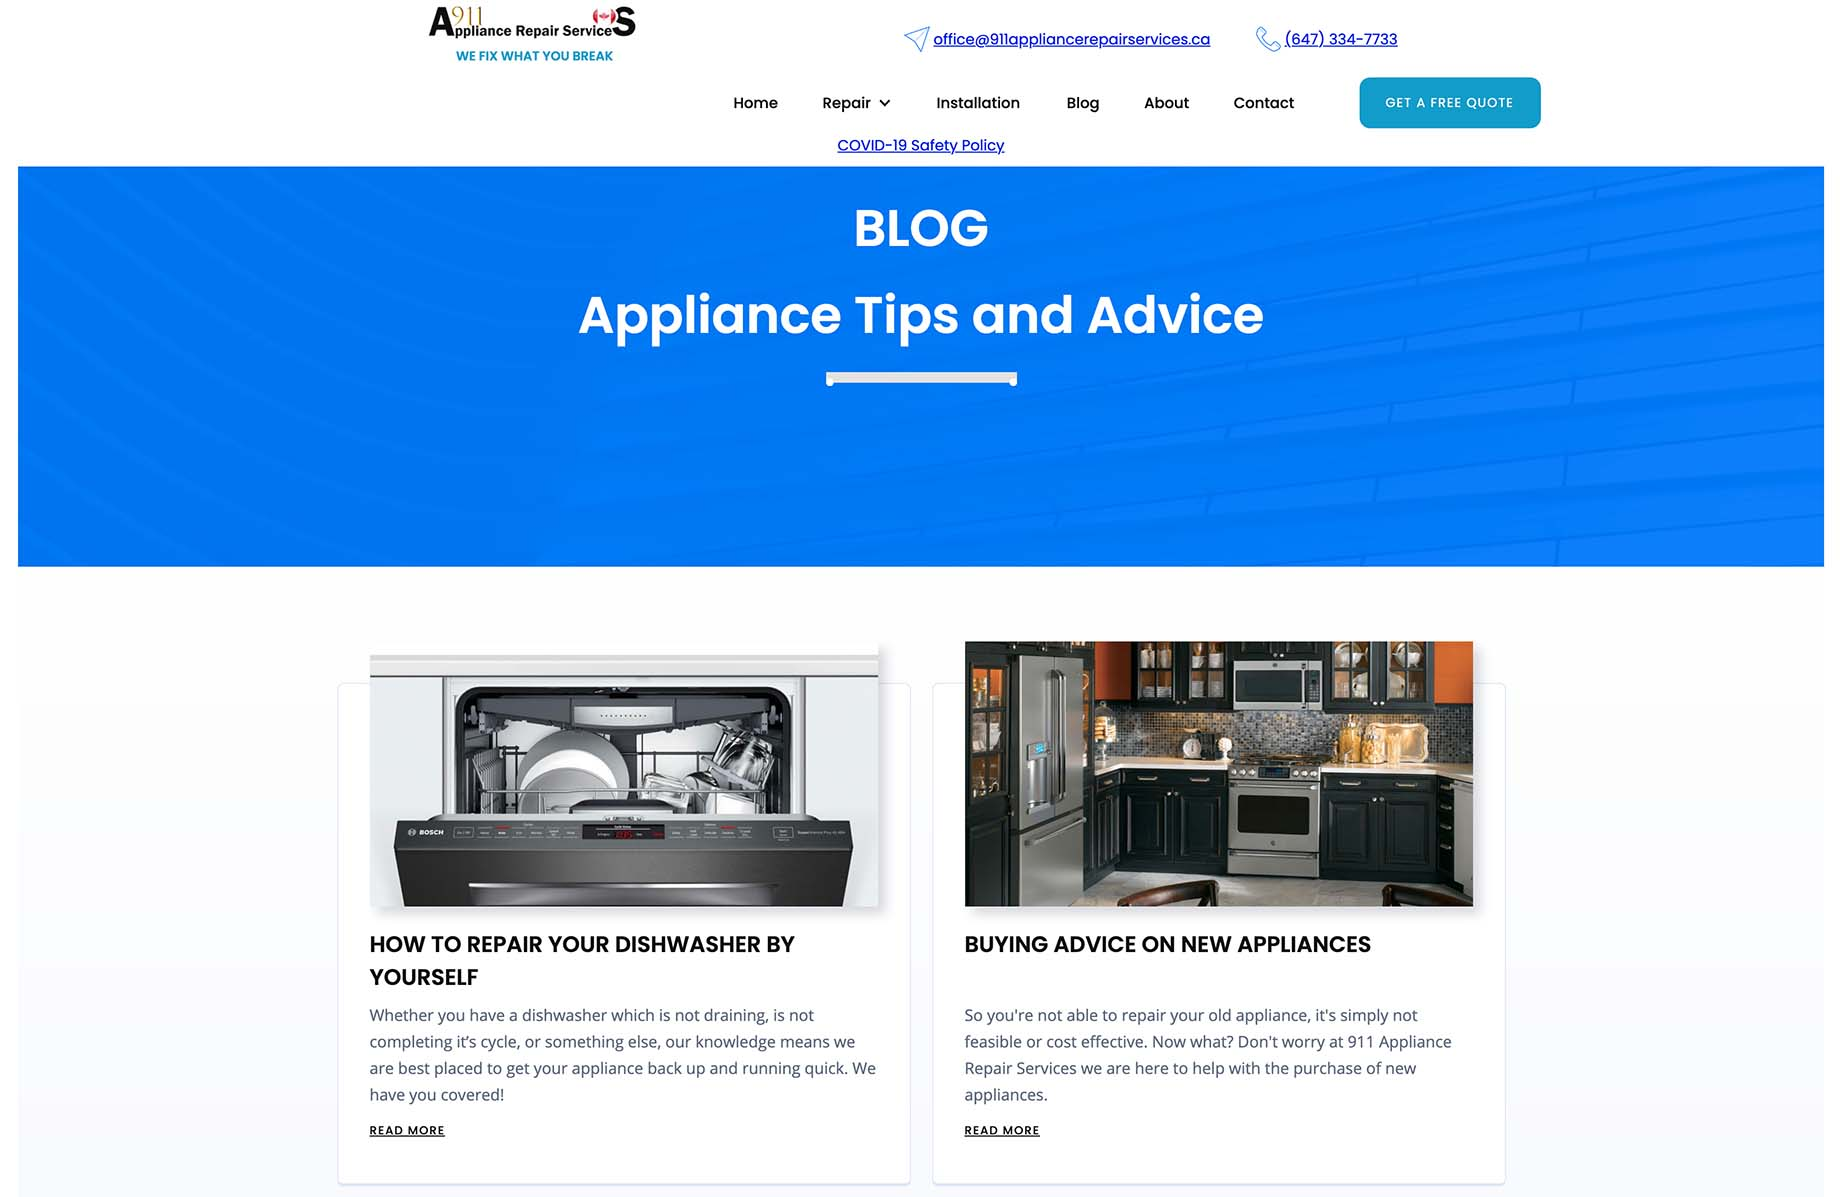 A sample website page from 911 Appliance Repair Services detailing the blog pages.